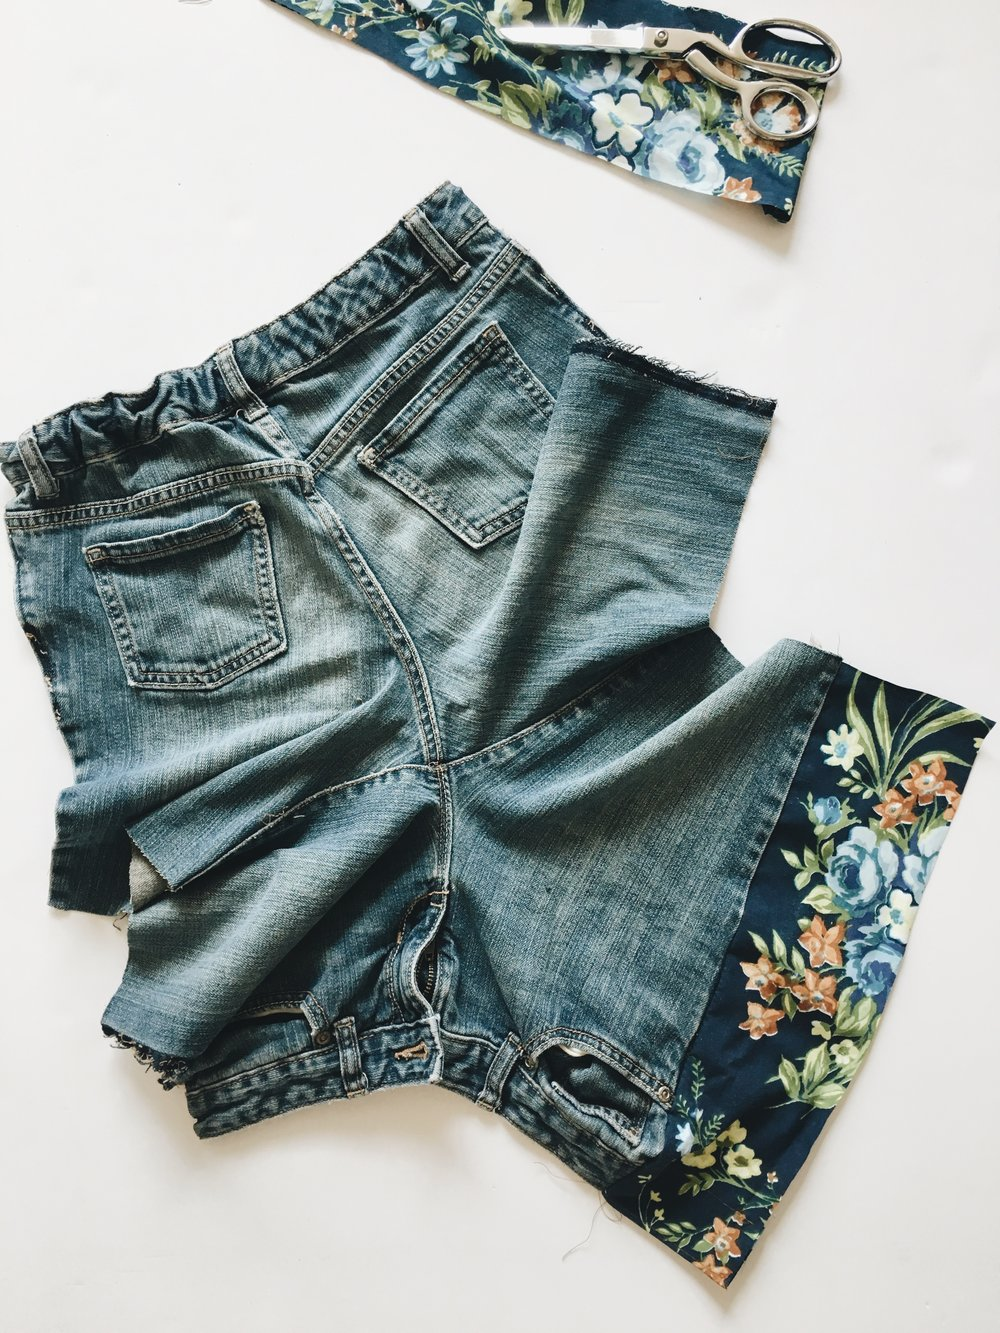 How to make your own boho style jean cut-offs